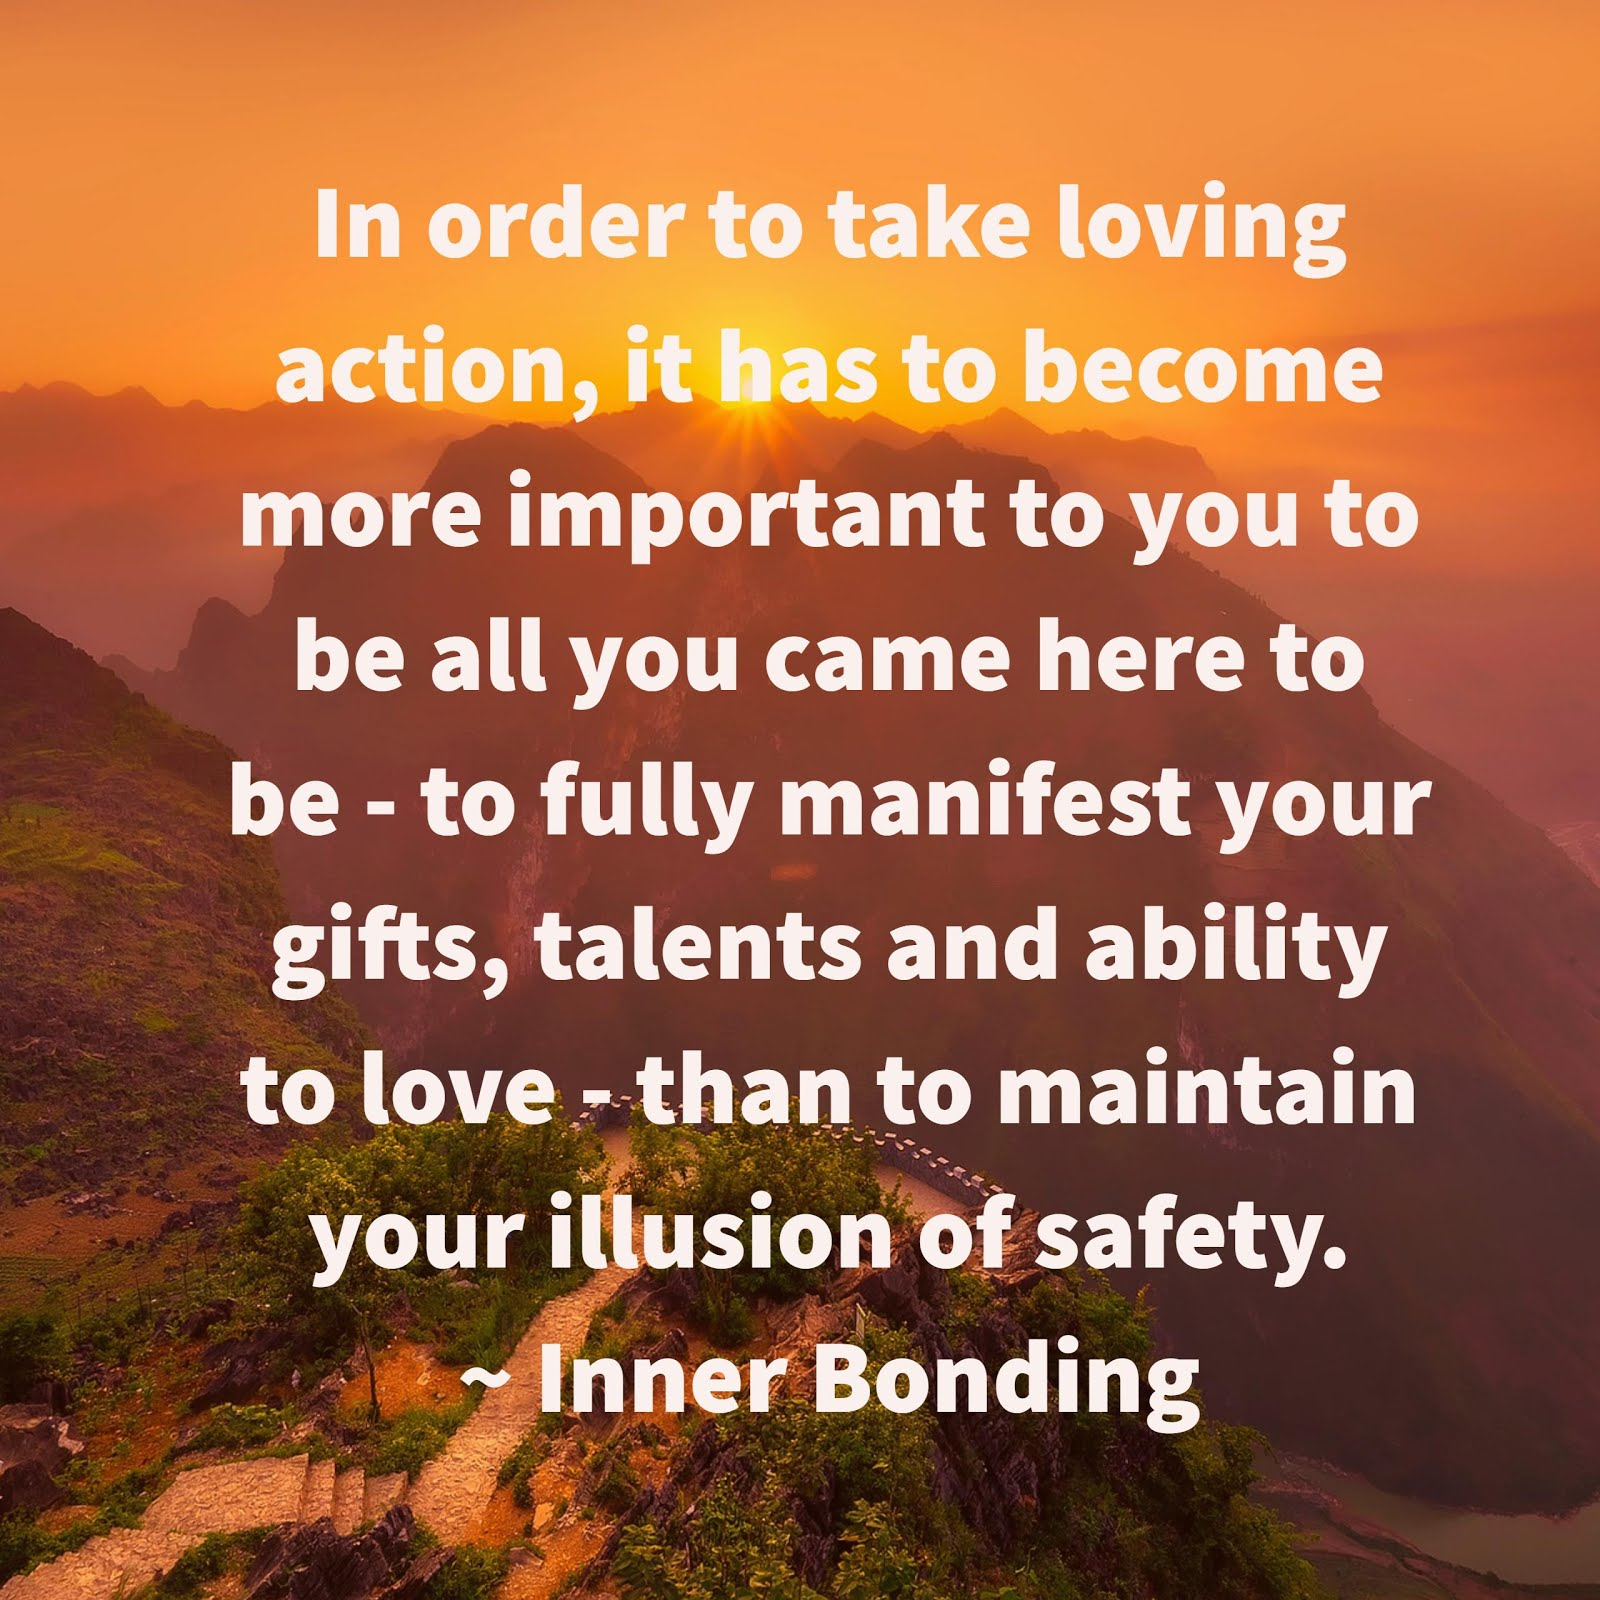 Bonding Quotes Brilliant The Mindfulness Connection Quotes